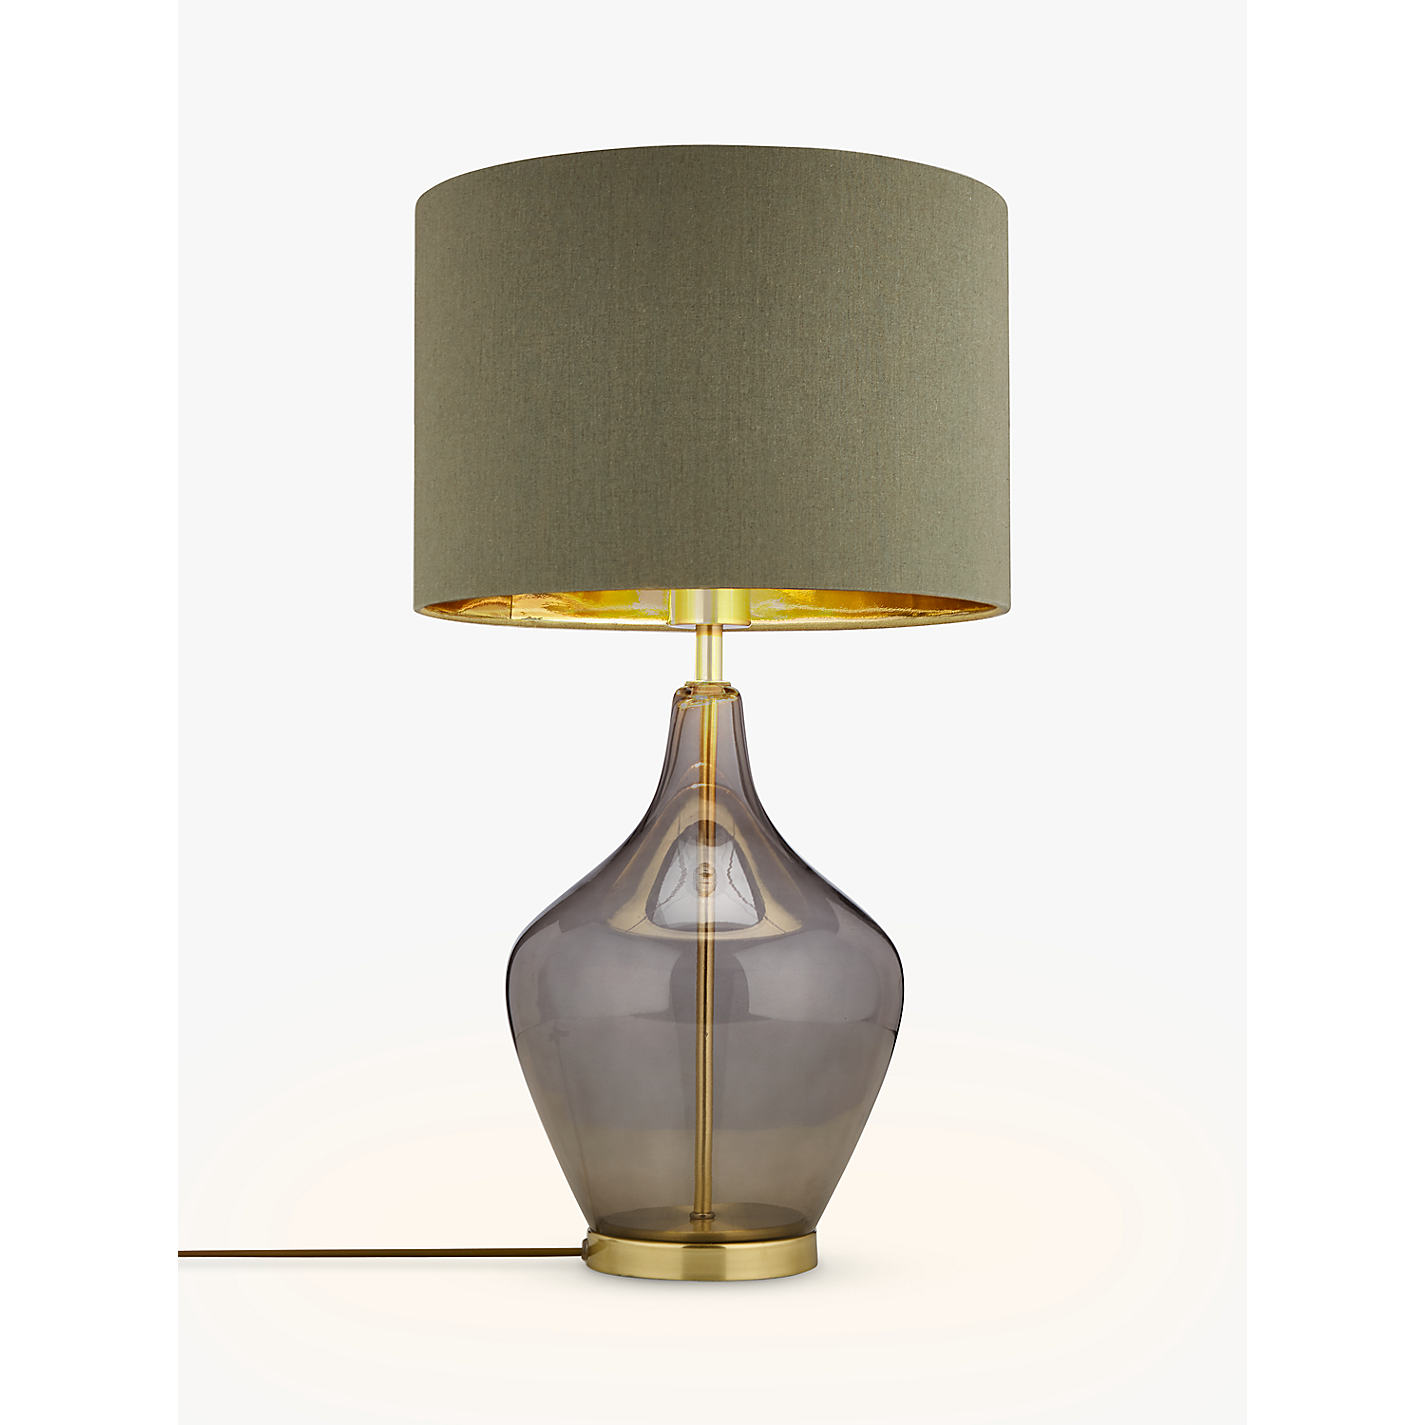 Buy john lewis ursula table lamp smoked glass john lewis buy john lewis ursula table lamp smoked glass online at johnlewis geotapseo Image collections